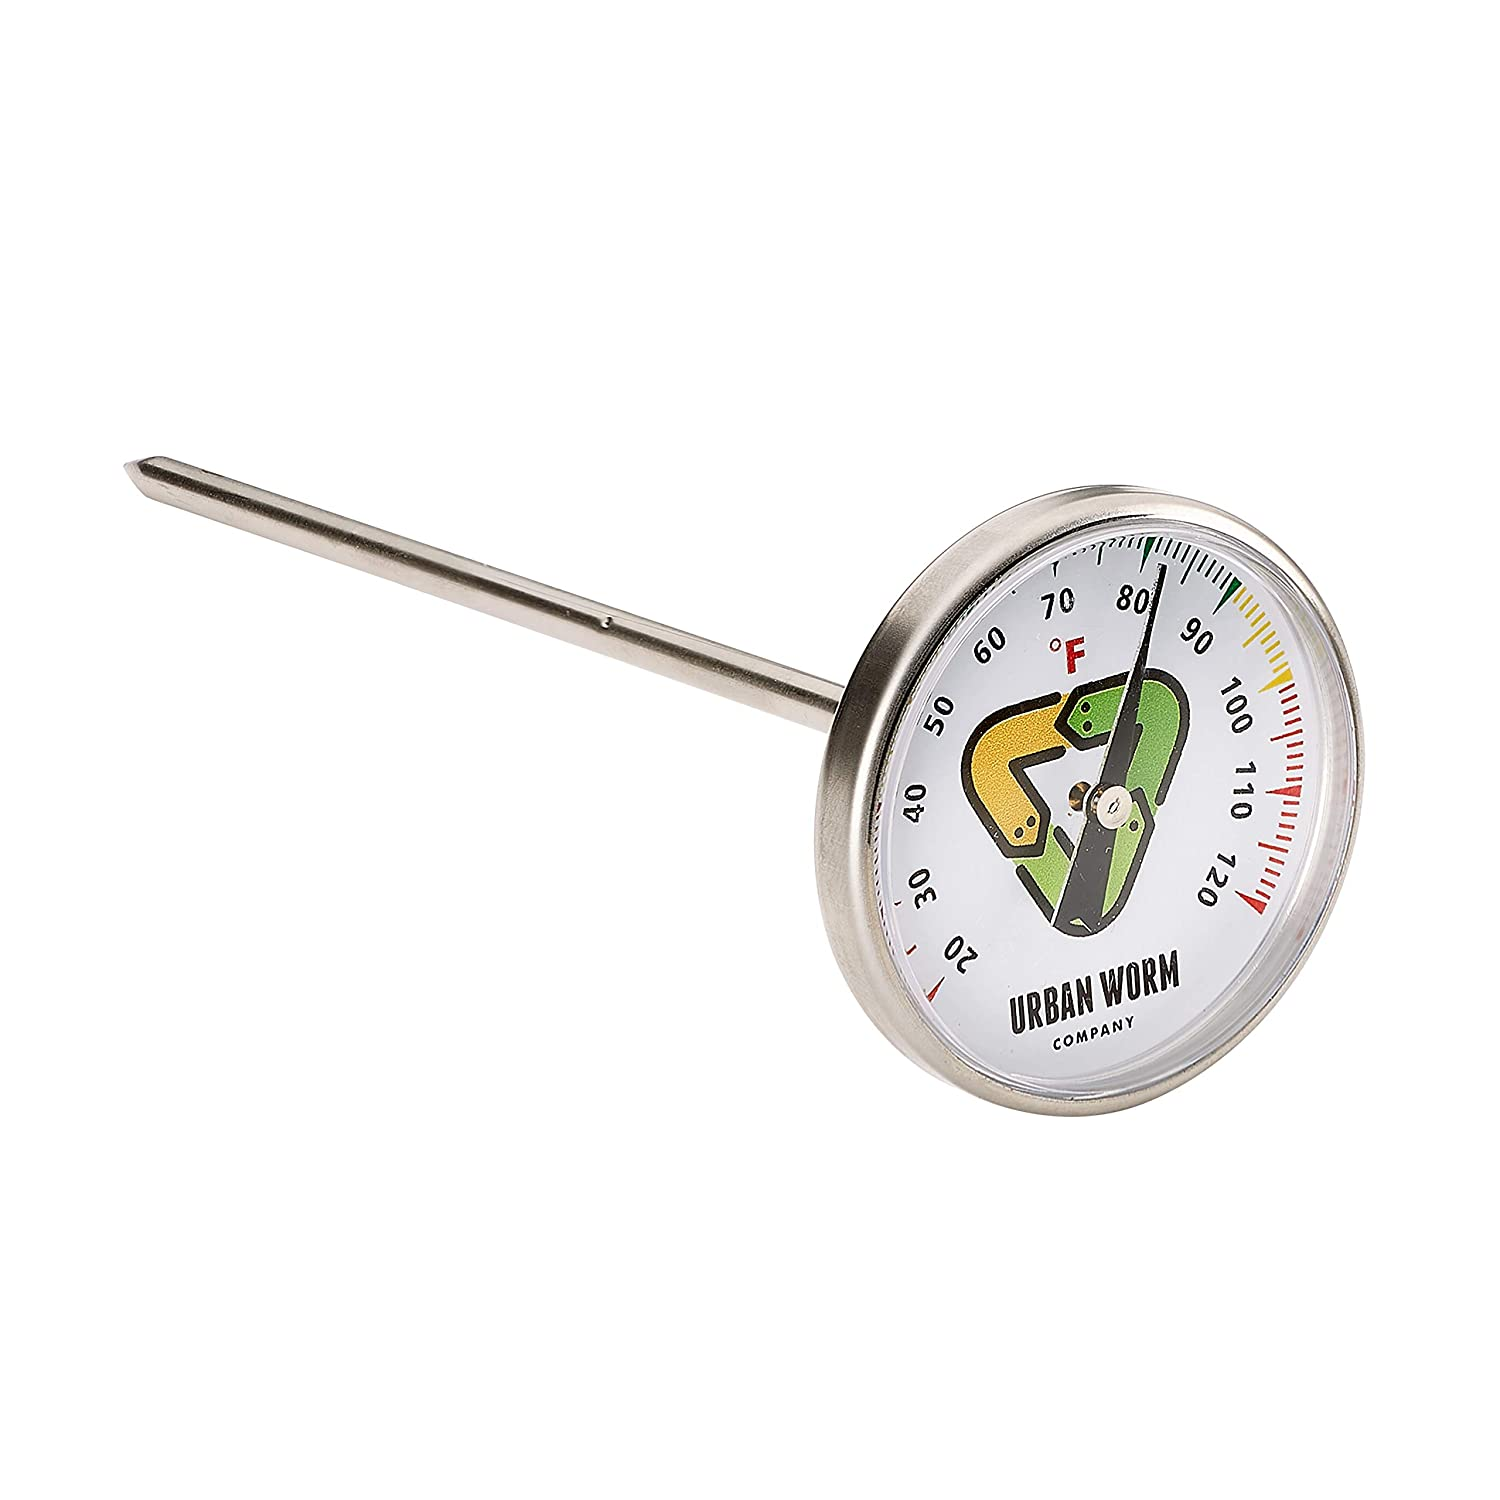 Urban Worm Soil Thermometer - Keep Microbes and Worms Happy for Gardening and Worm Composting